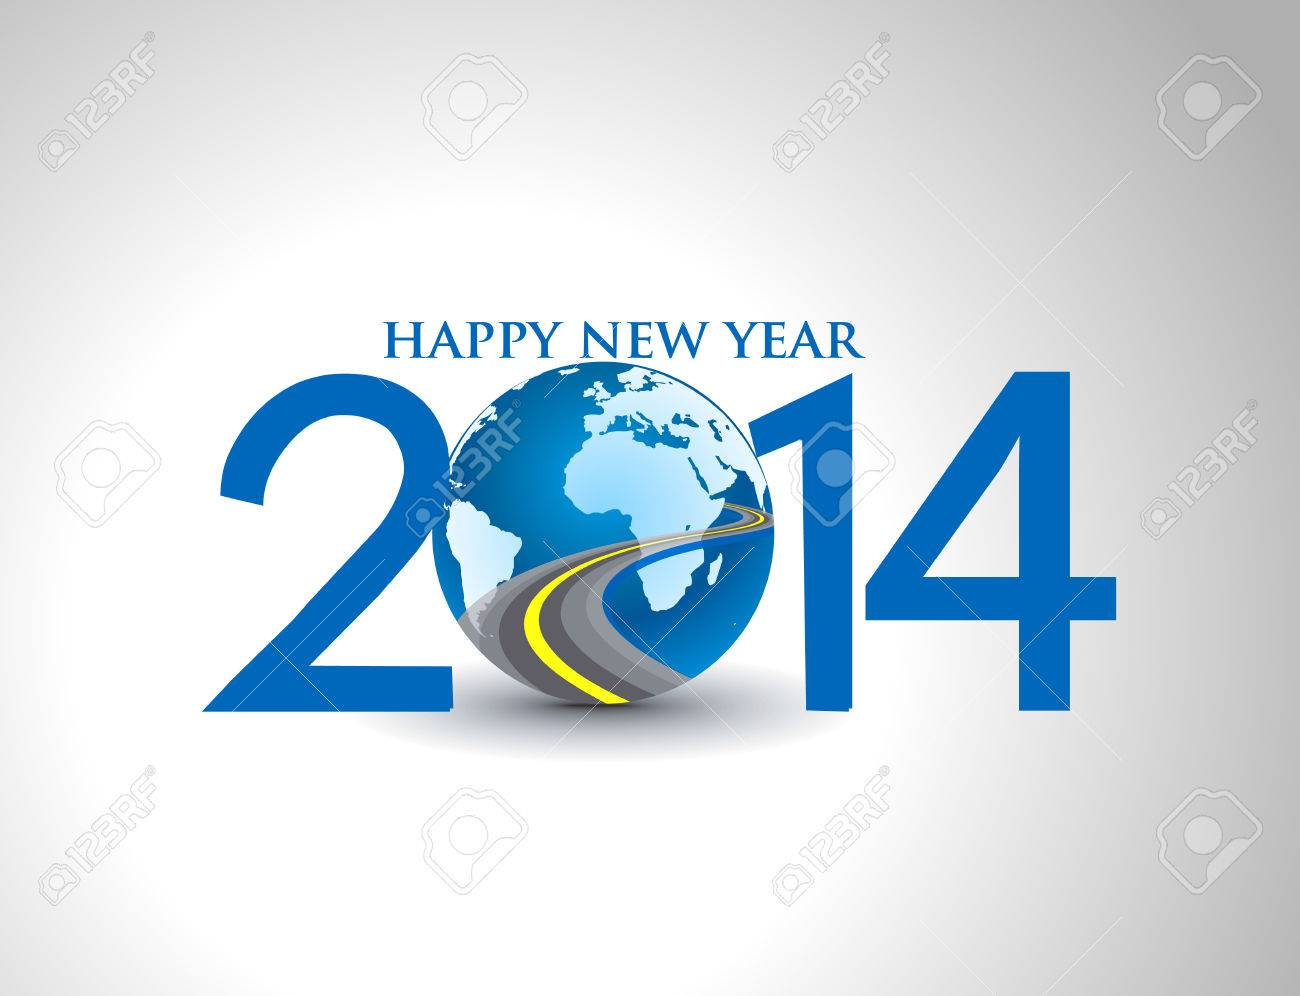 Happy New Year 2014 Text Design Stock Vector - 24052257